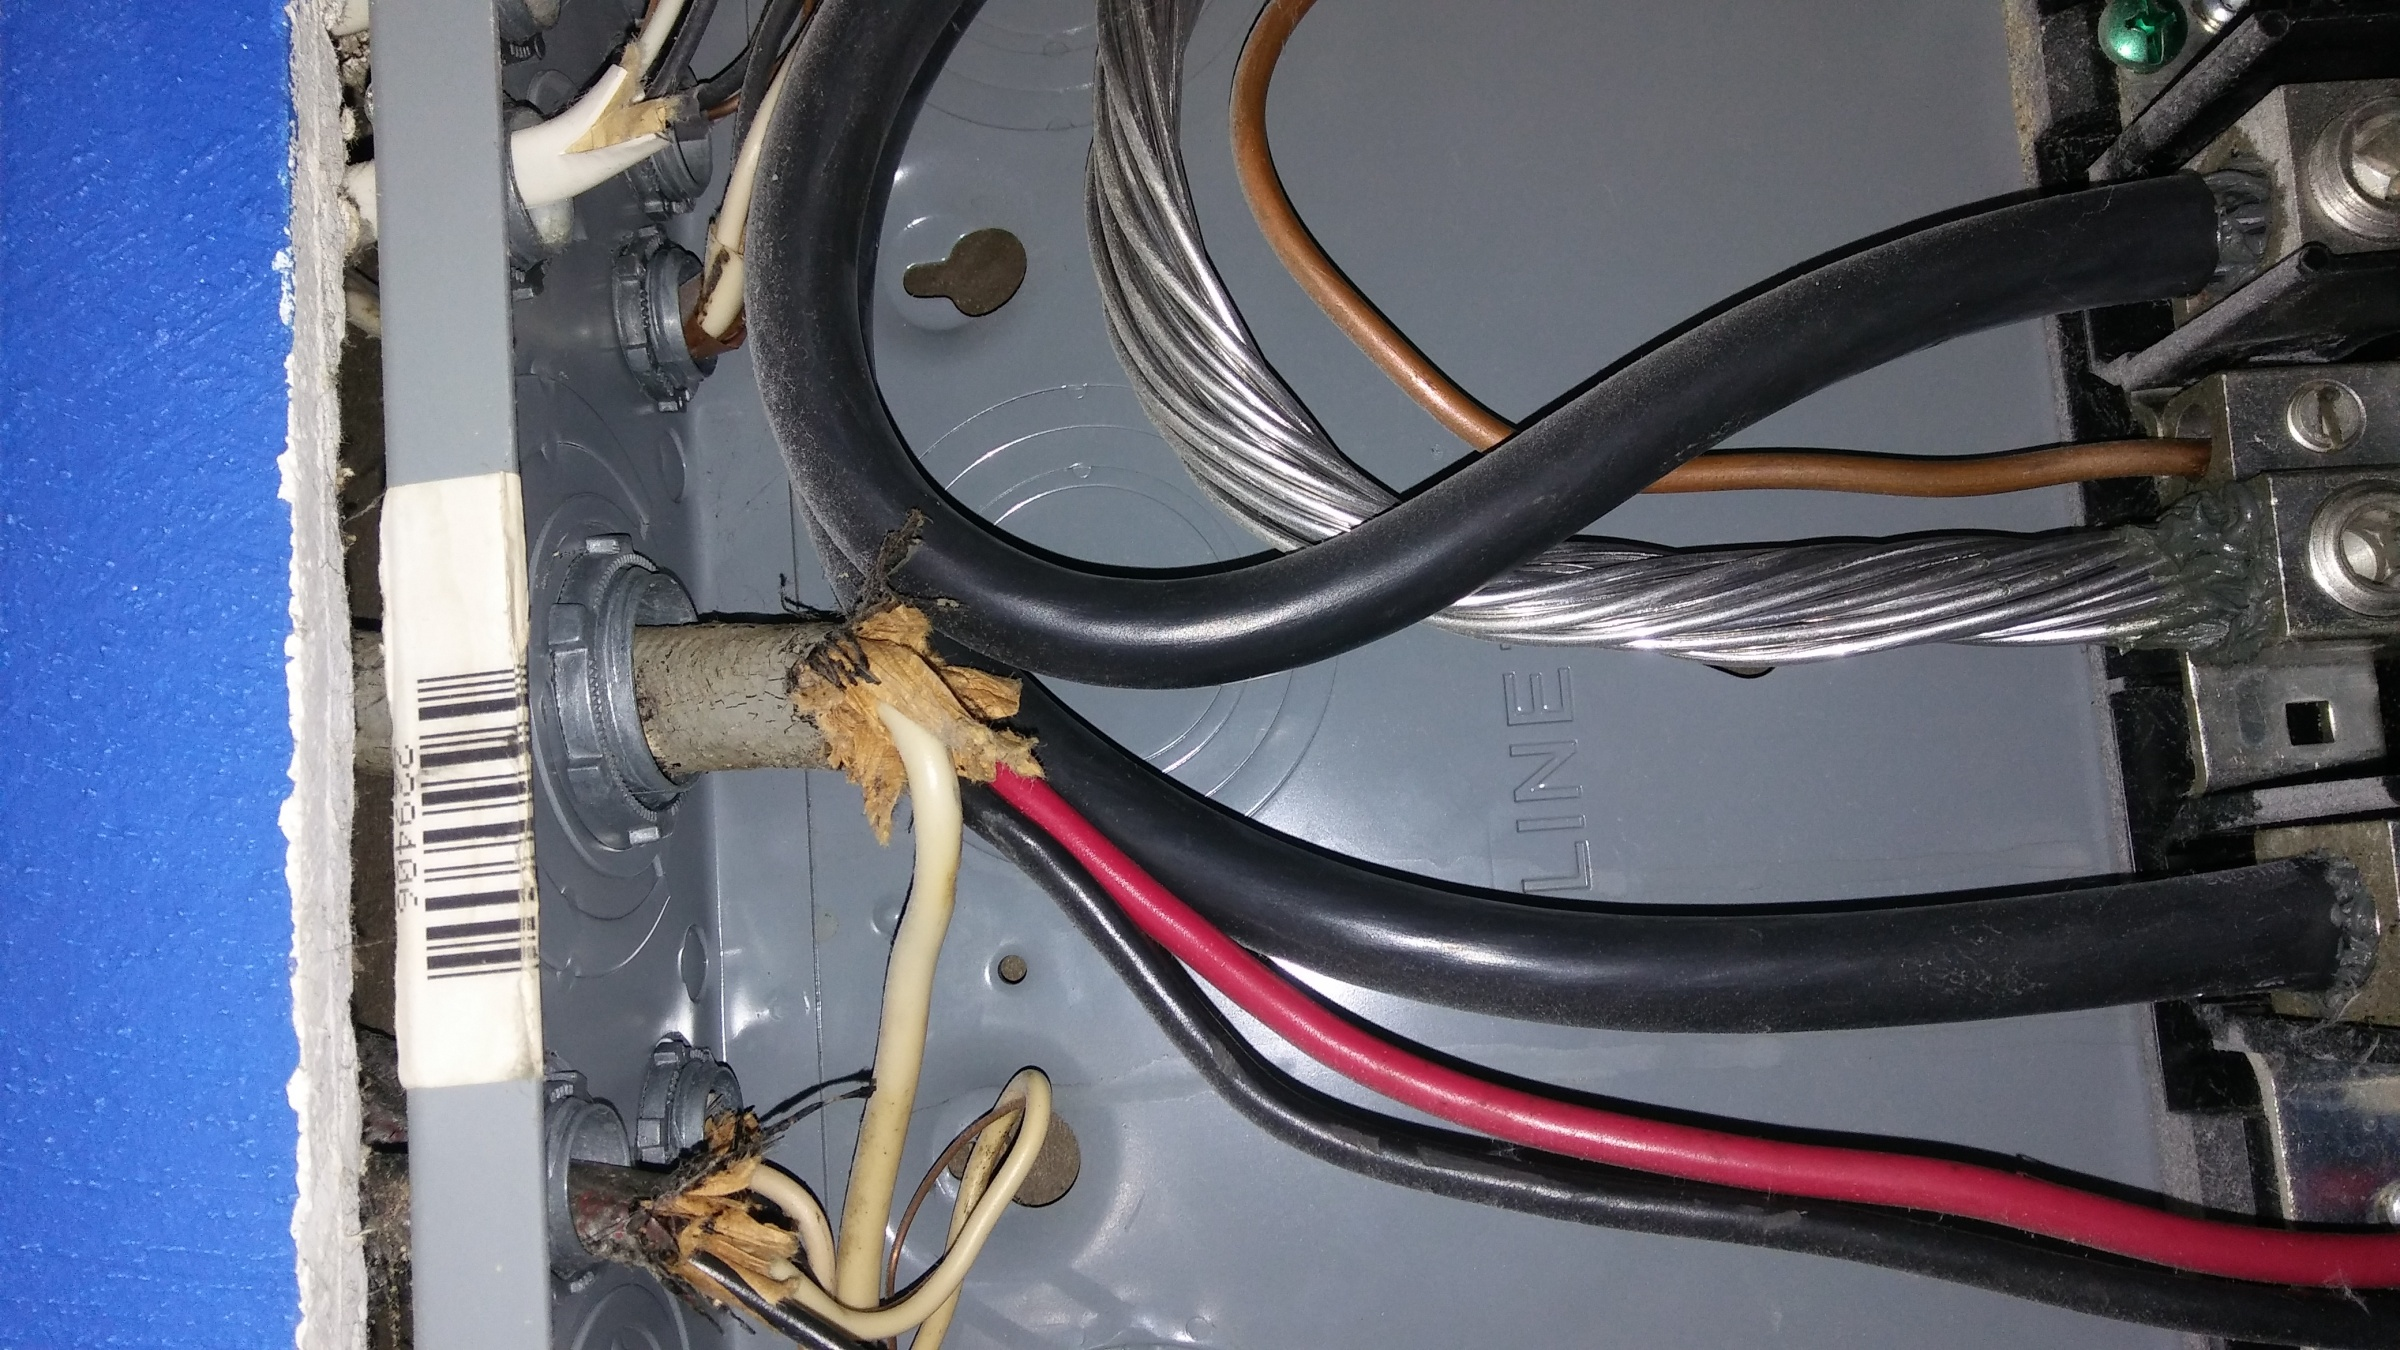 4 Wire Cooktop On 3 Supply 20190131 225717 Jpg